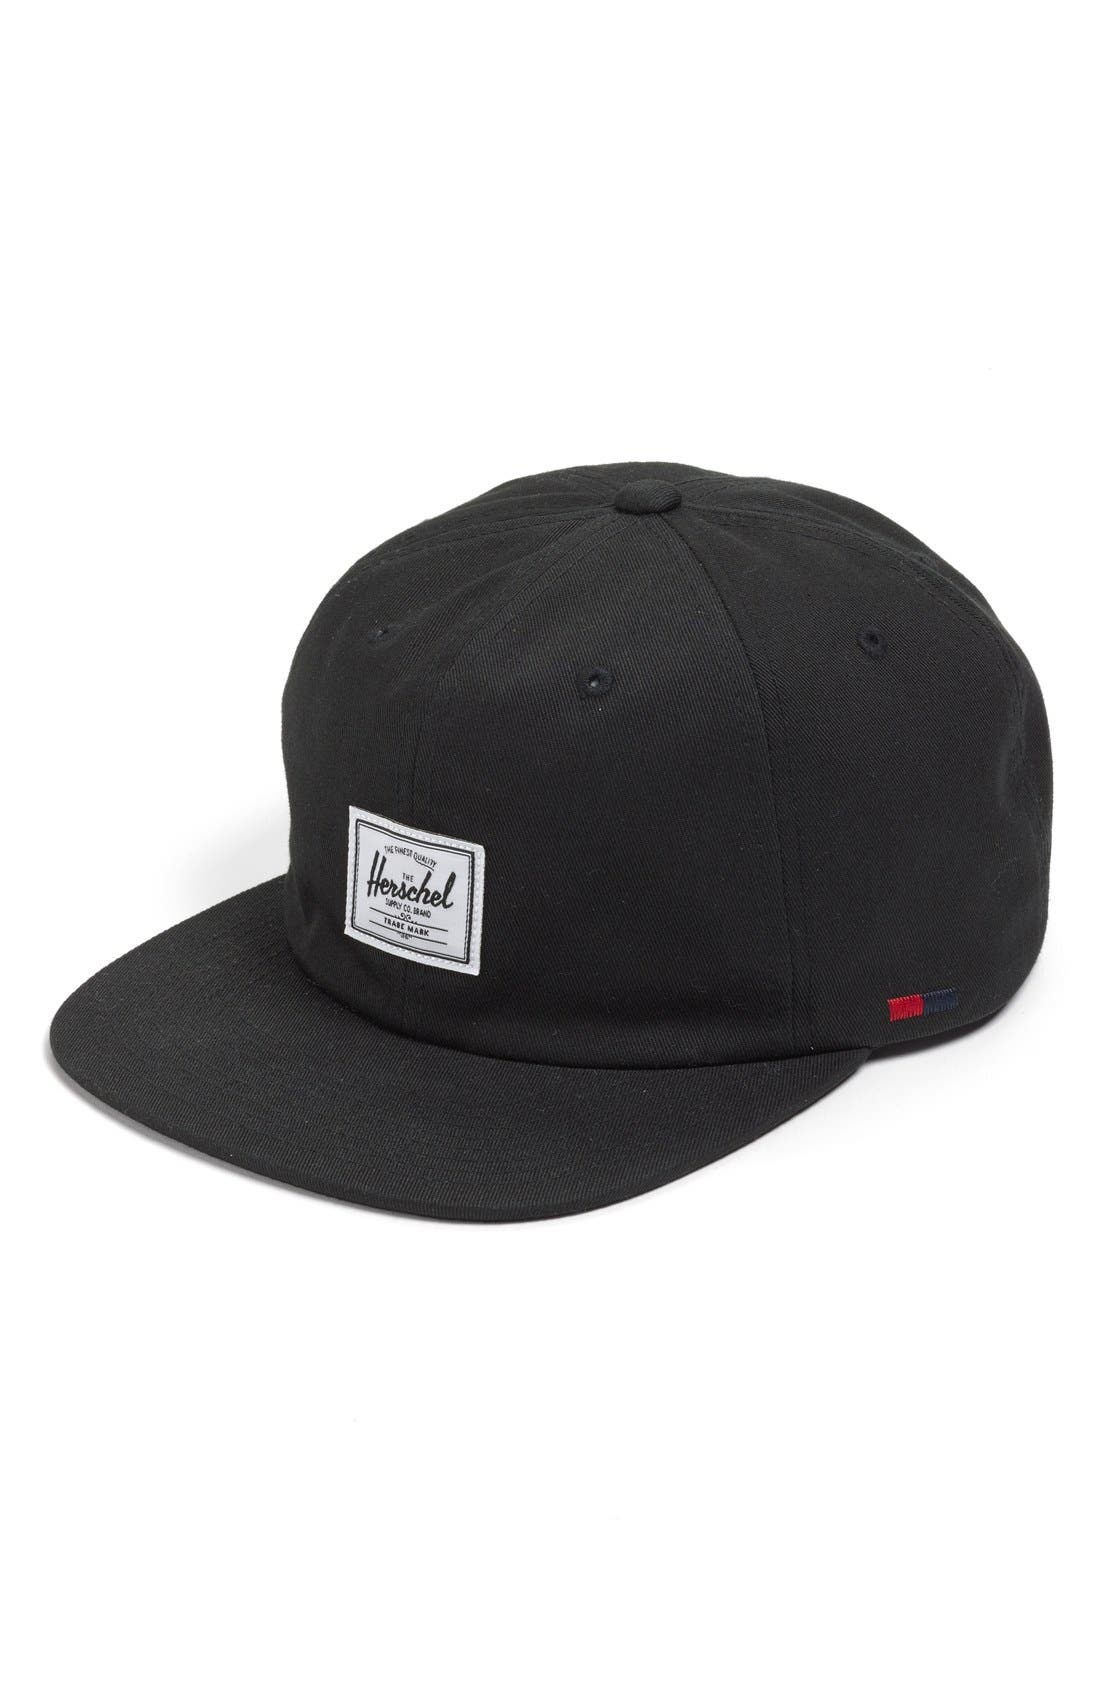 'Albert' Ball Cap,                         Main,                         color, Black